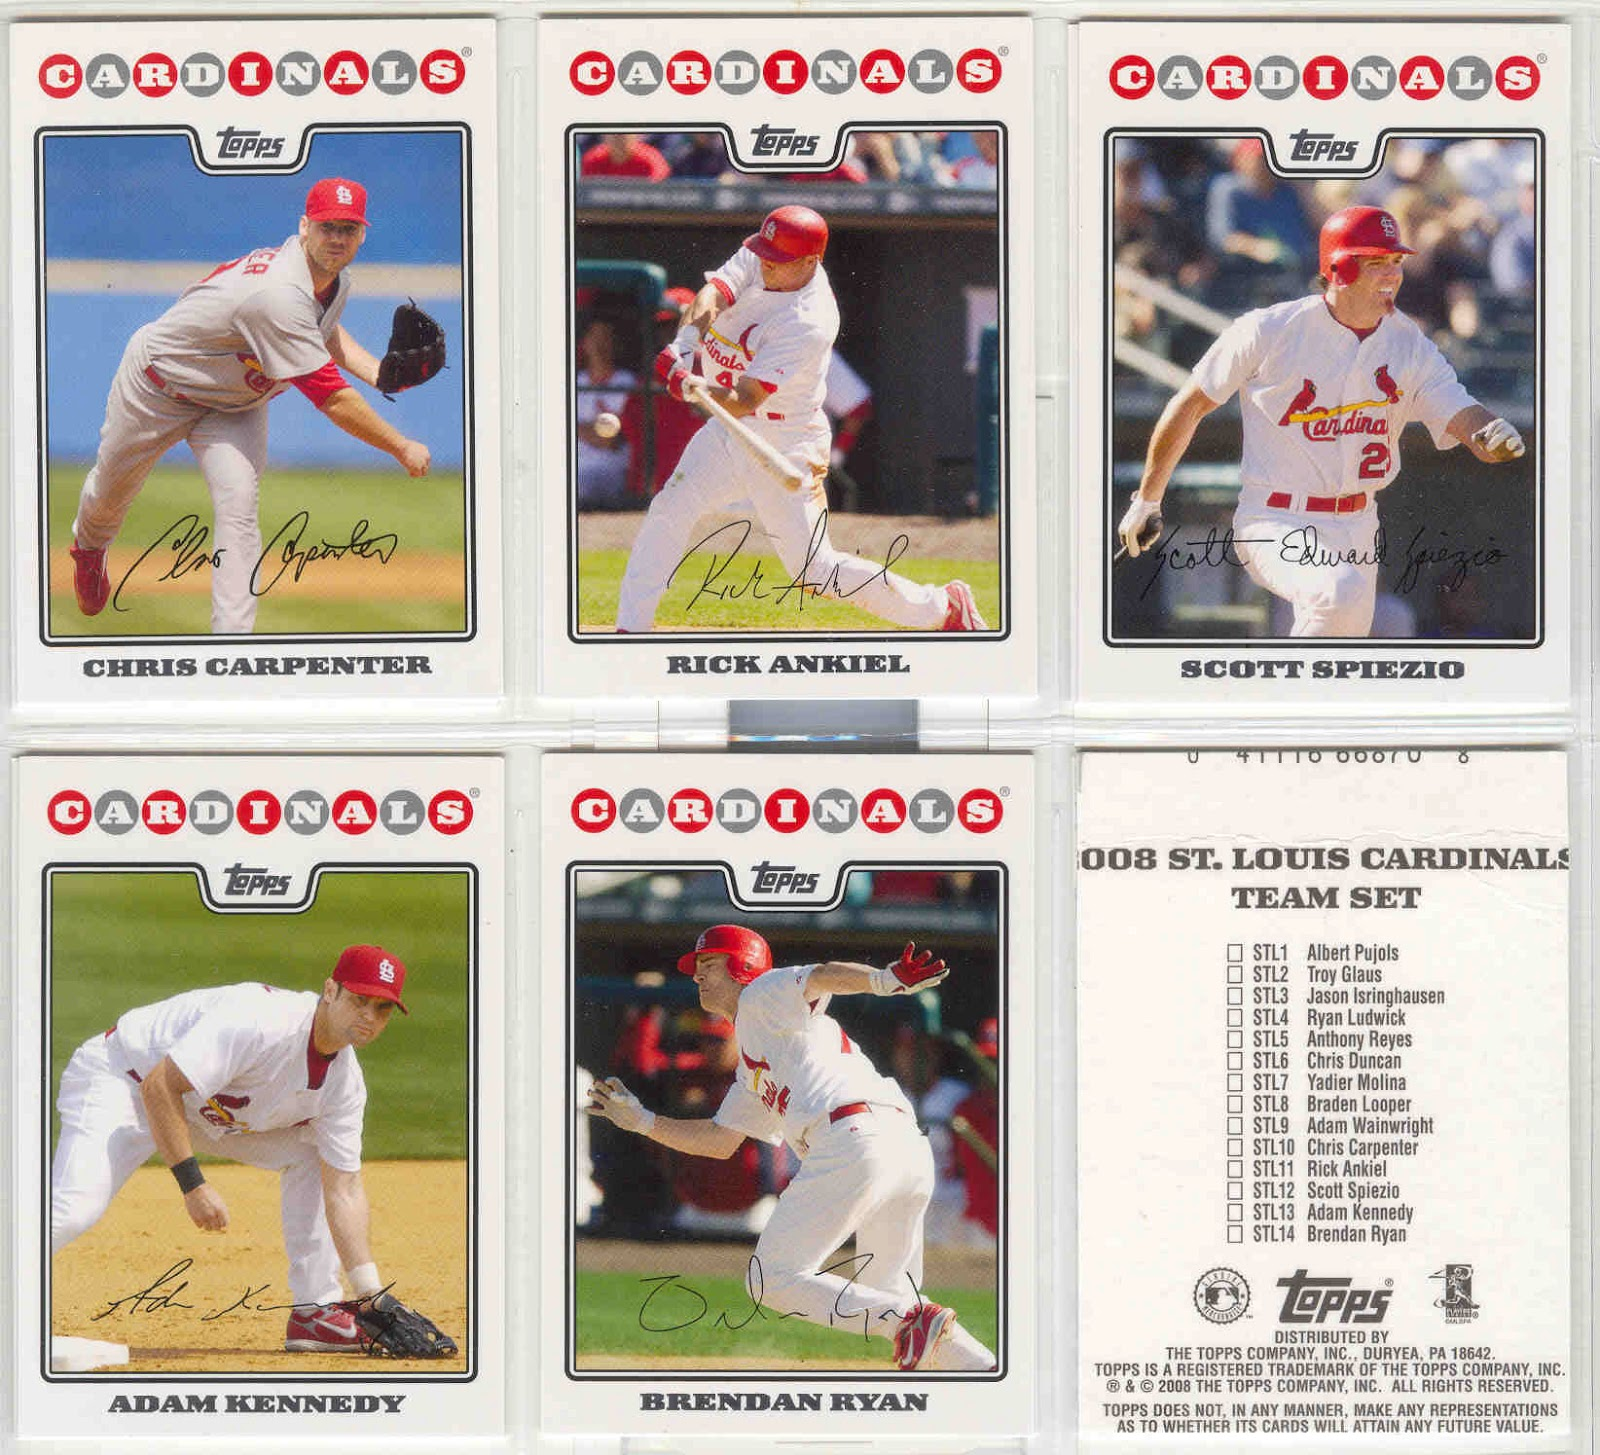 Bdj610s Topps Baseball Card Blog Random Topps Team Set Of